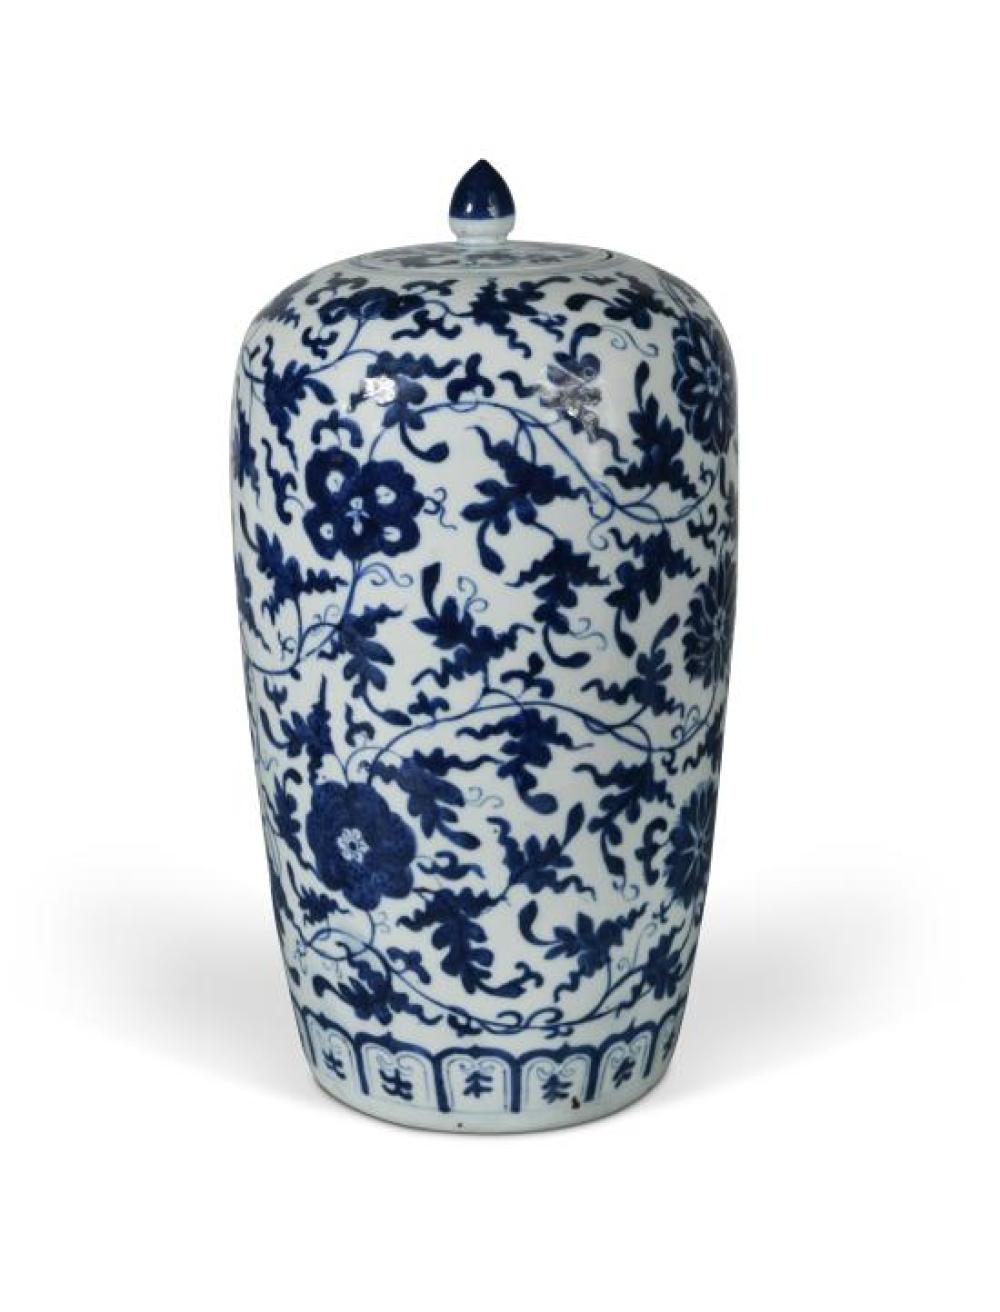 A Chinese blue and white porcelain vase, Qing dynasty, 19th century,